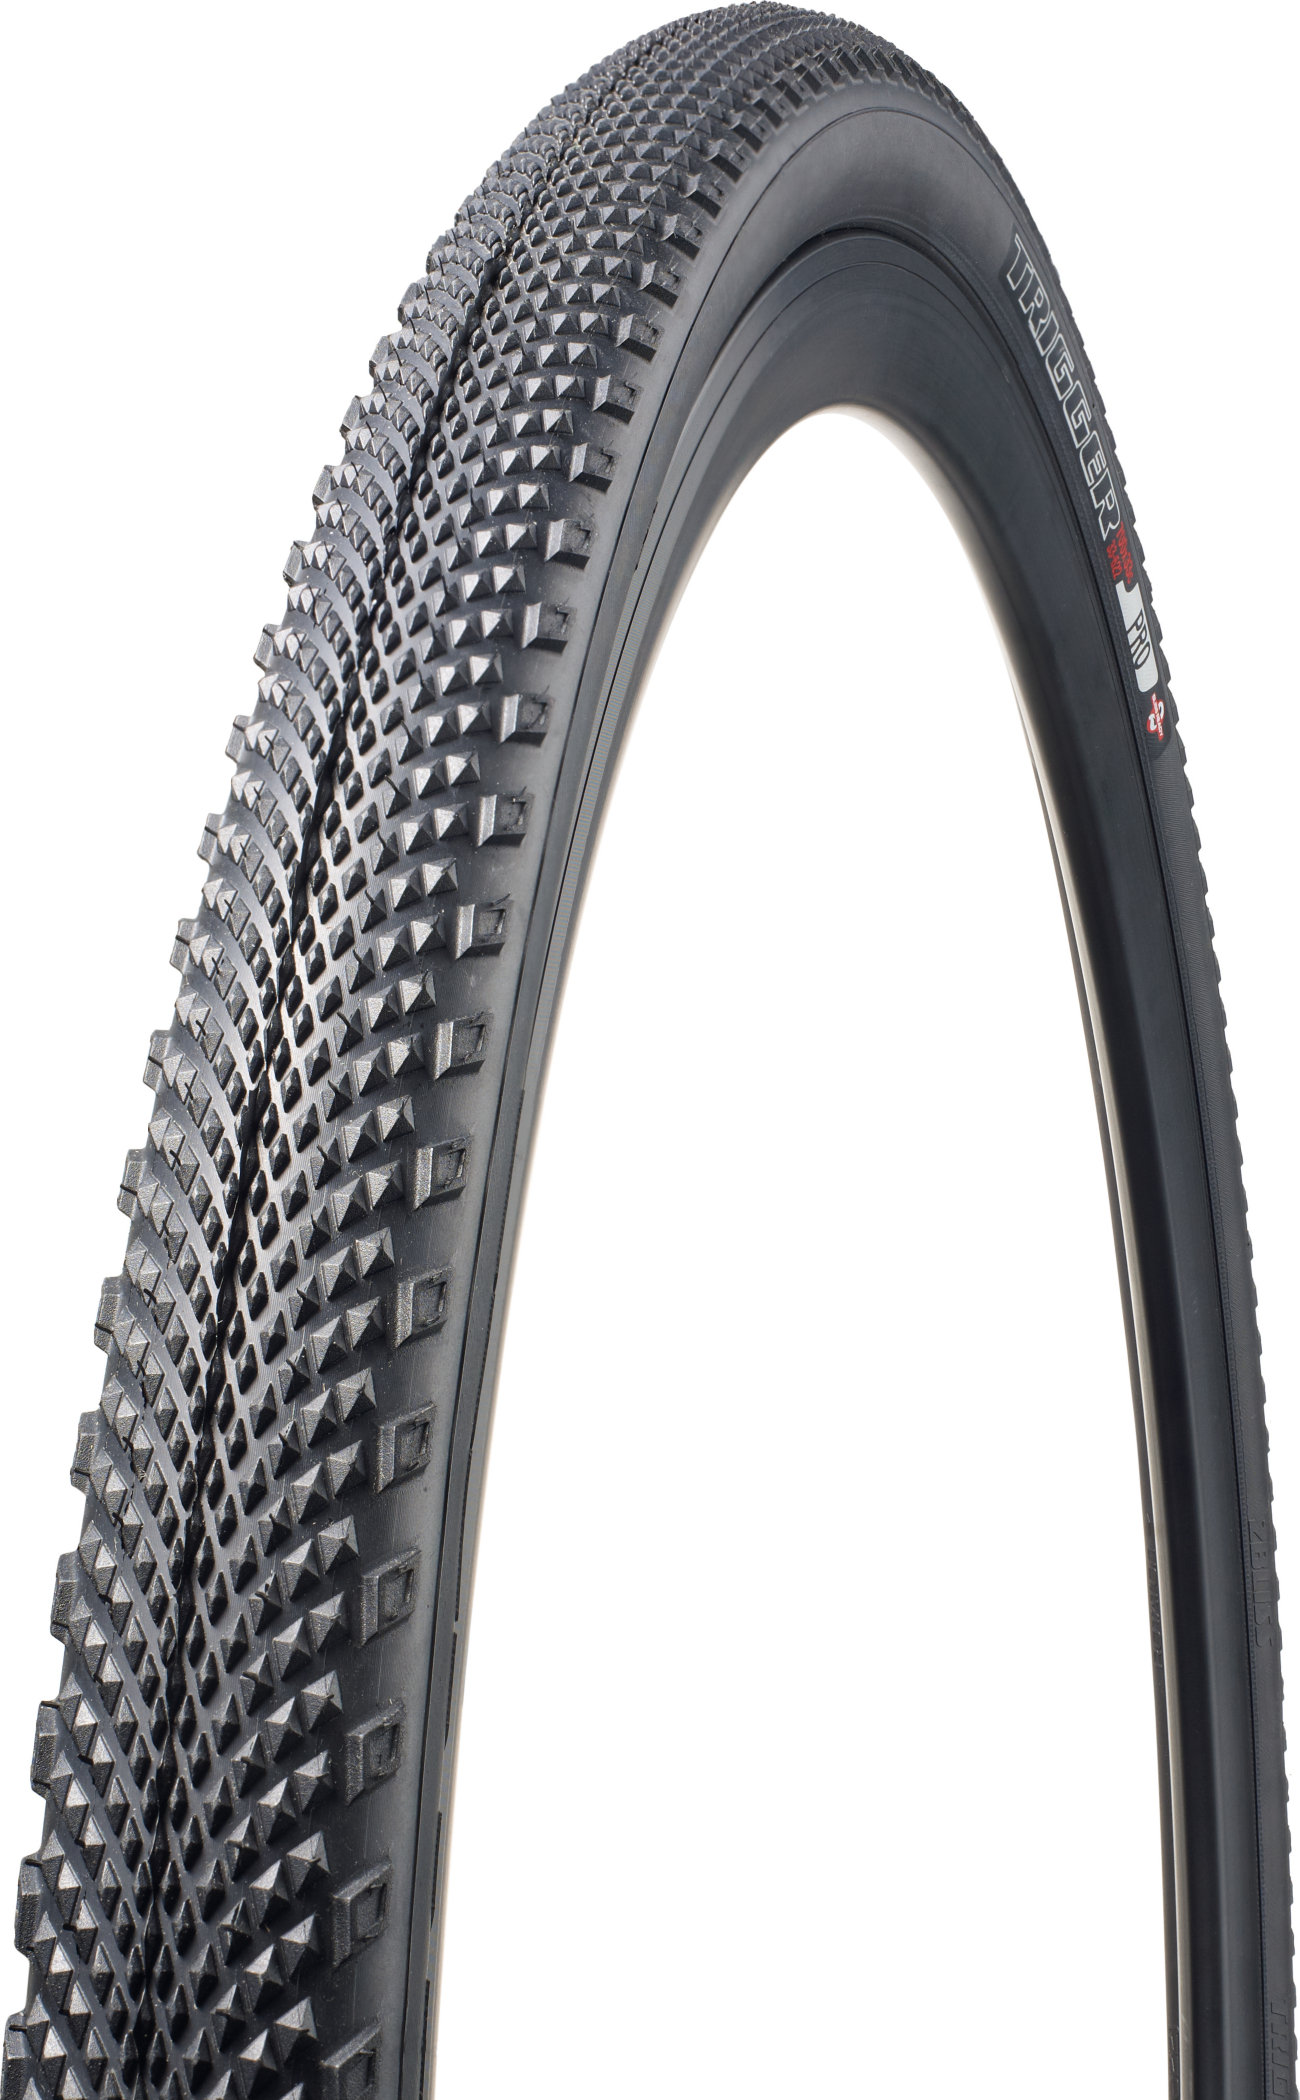 SPECIALIZED TRIGGER PRO 2BR TIRE 700X33C - SPECIALIZED TRIGGER PRO 2BR TIRE 700X33C